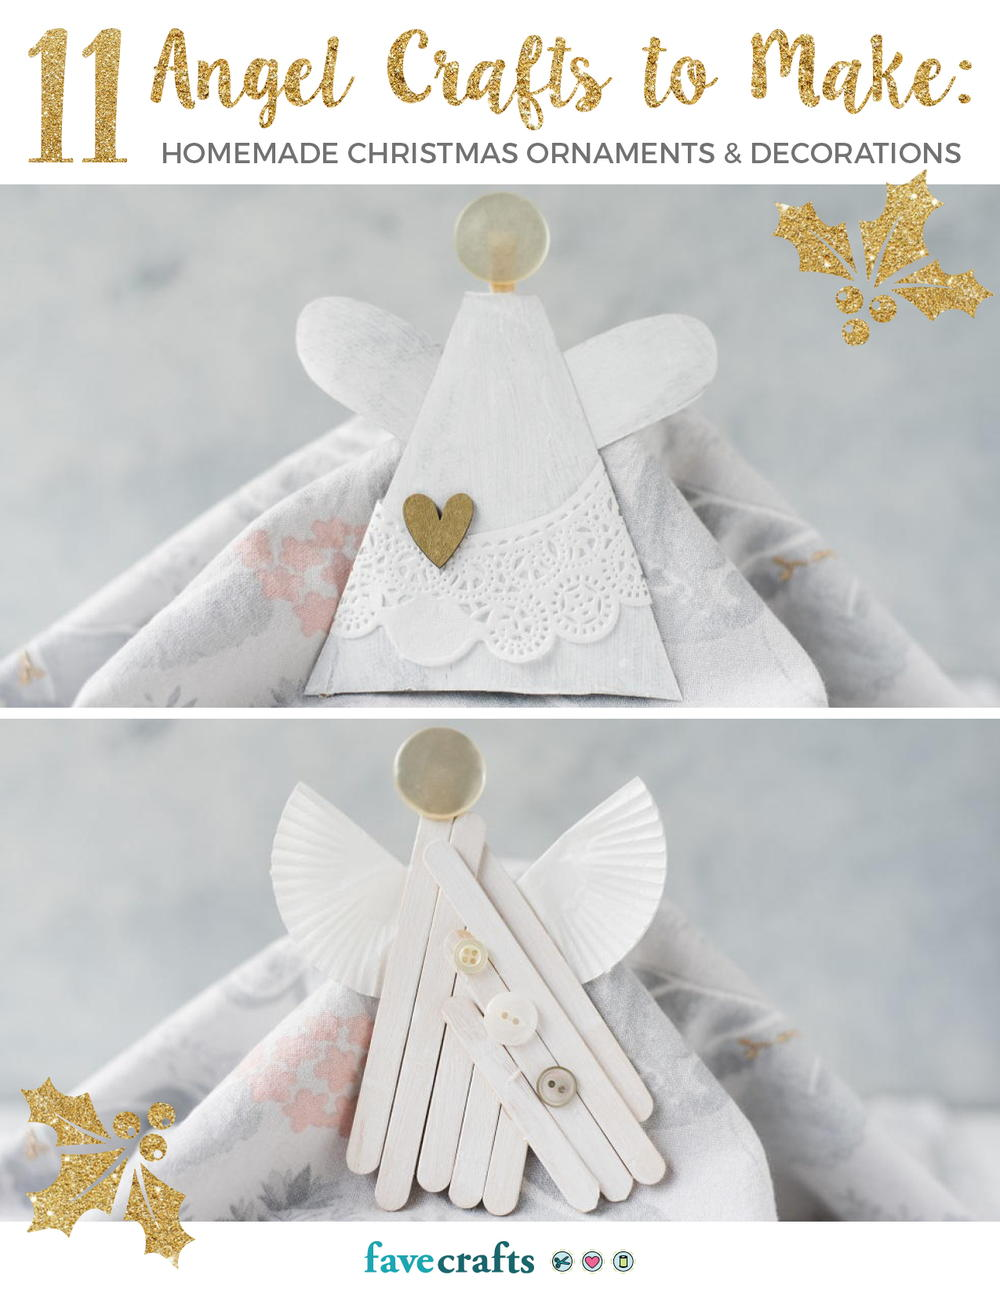 11 angel crafts to make homemade christmas ornaments decorations free ebook - Handmade Angels Christmas Decorations